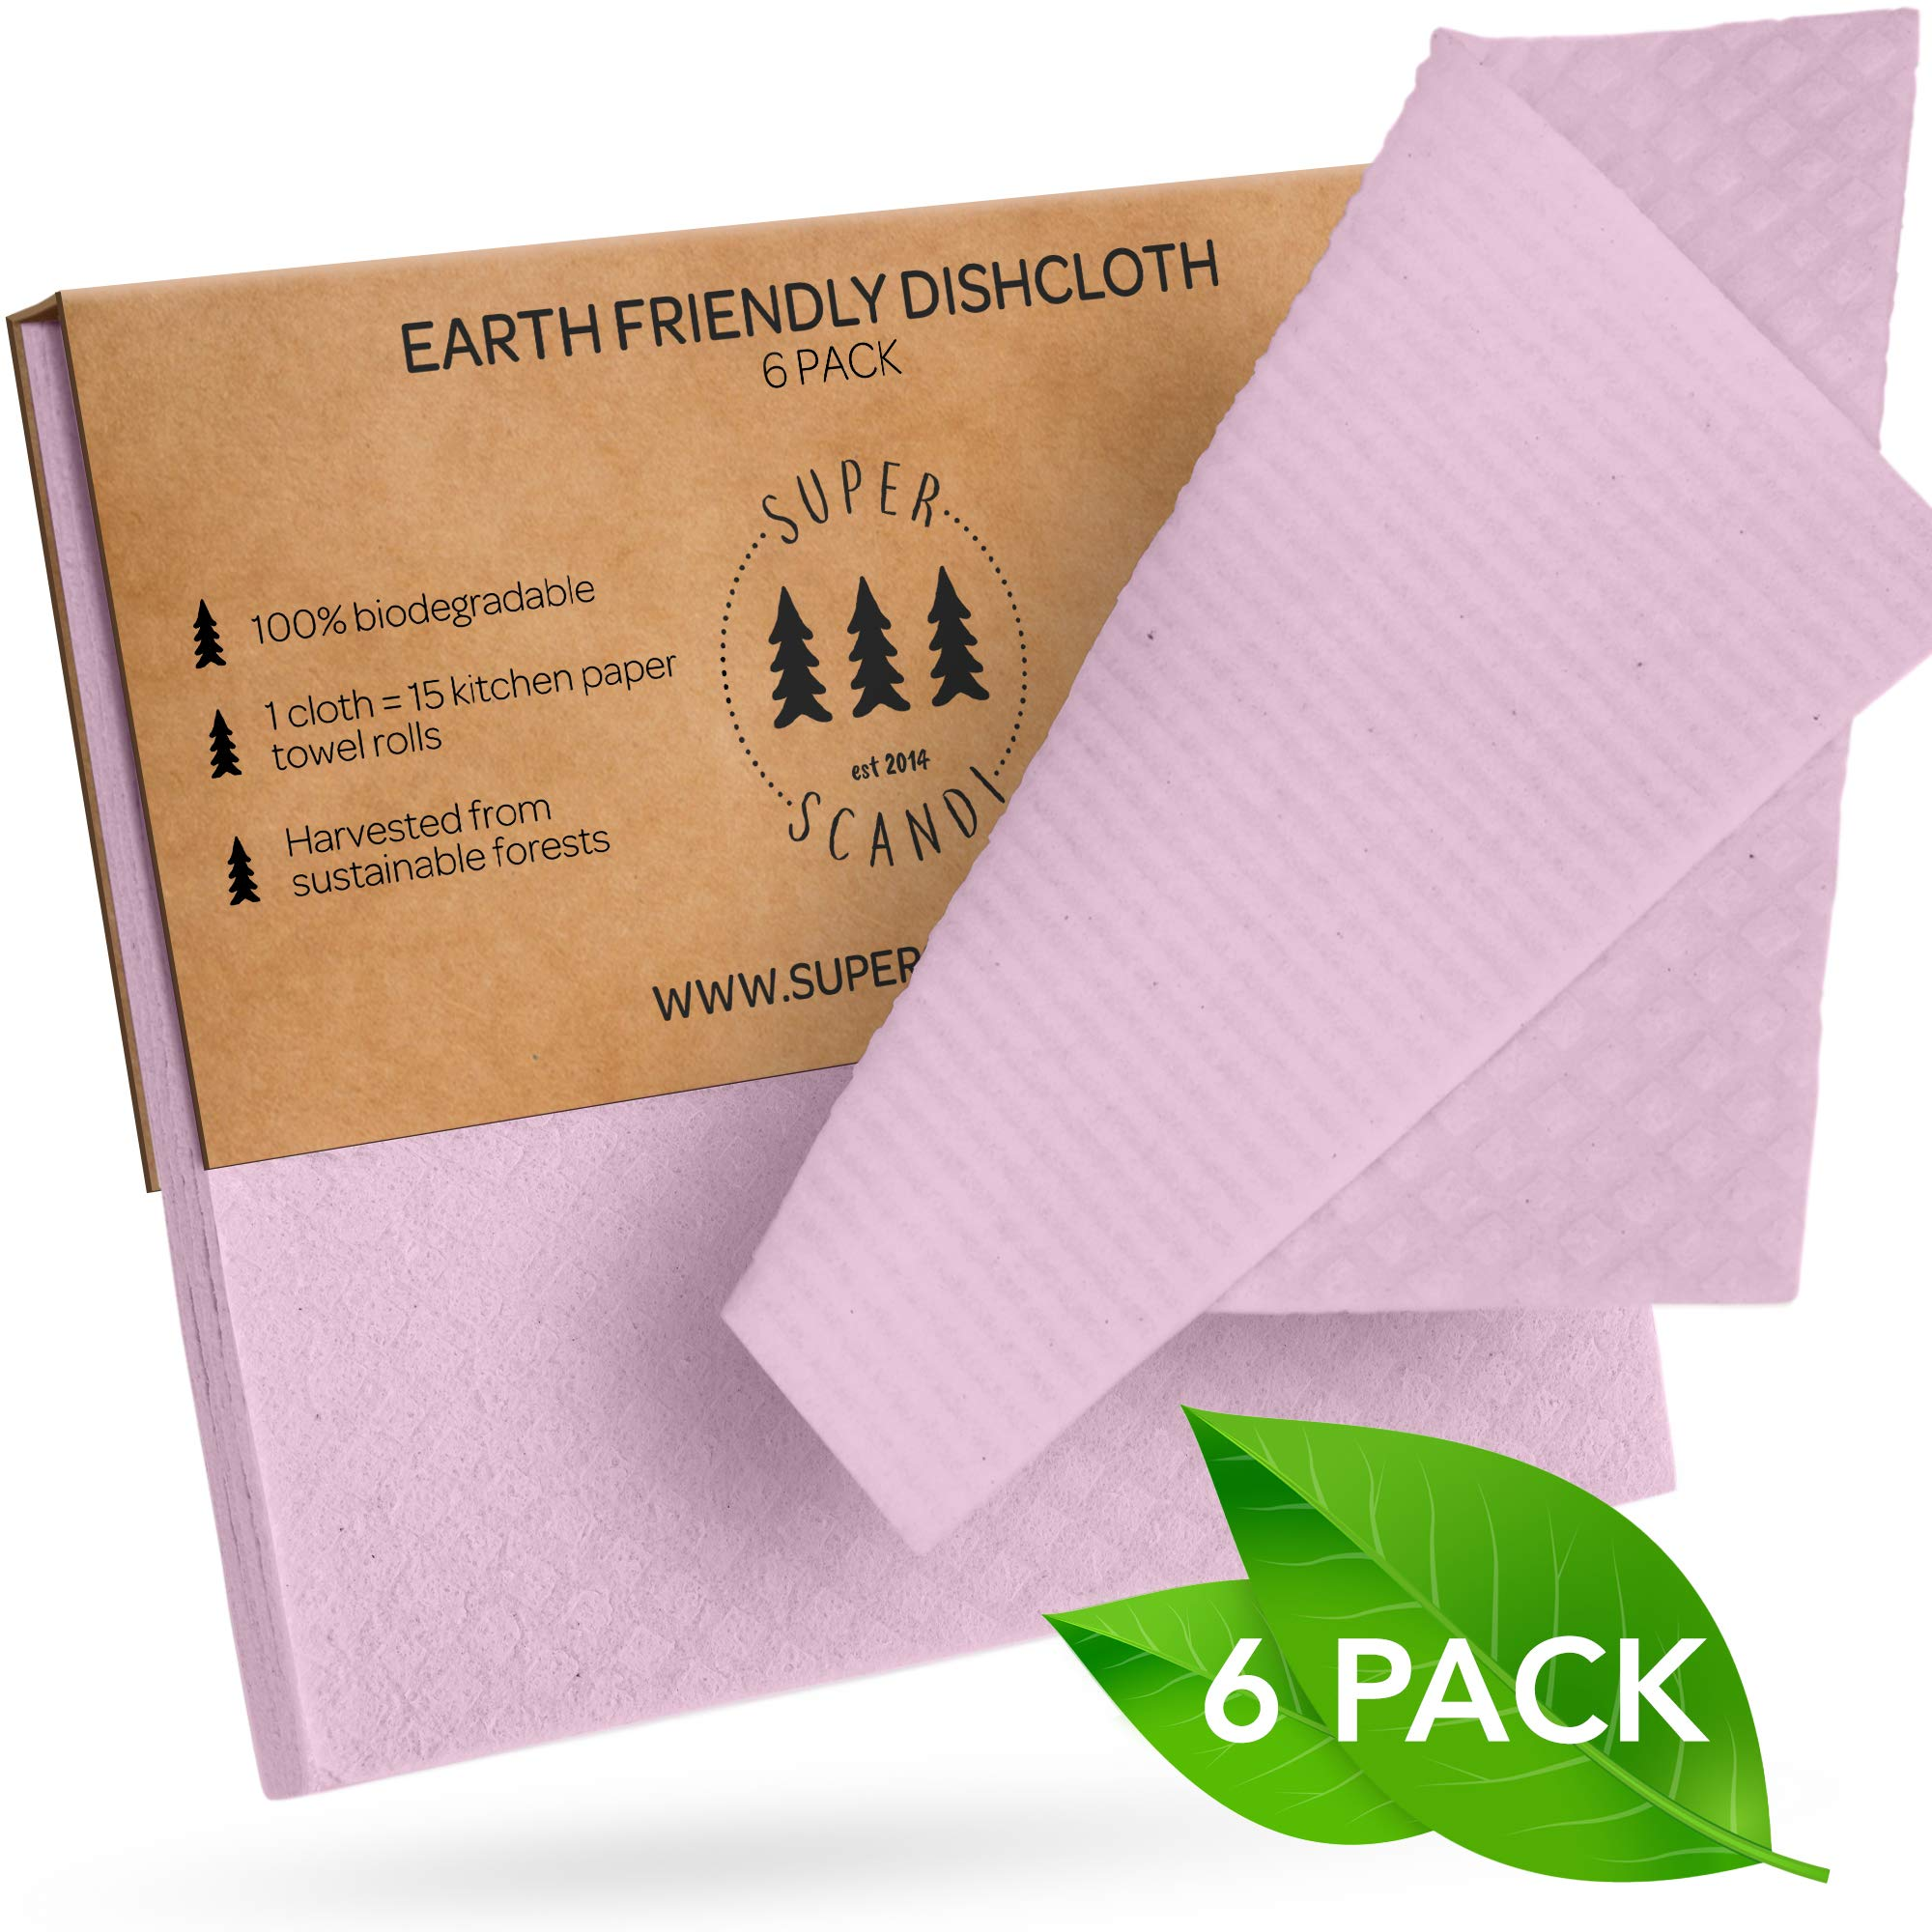 SUPERSCANDI Swedish Dishcloths Reusable Biodegradable Cellulose Sponge Cleaning Cloths for Kitchen Dish Rags Washing Wipes Paper Towel Replacement Washcloths (6 Pack Light Pink)